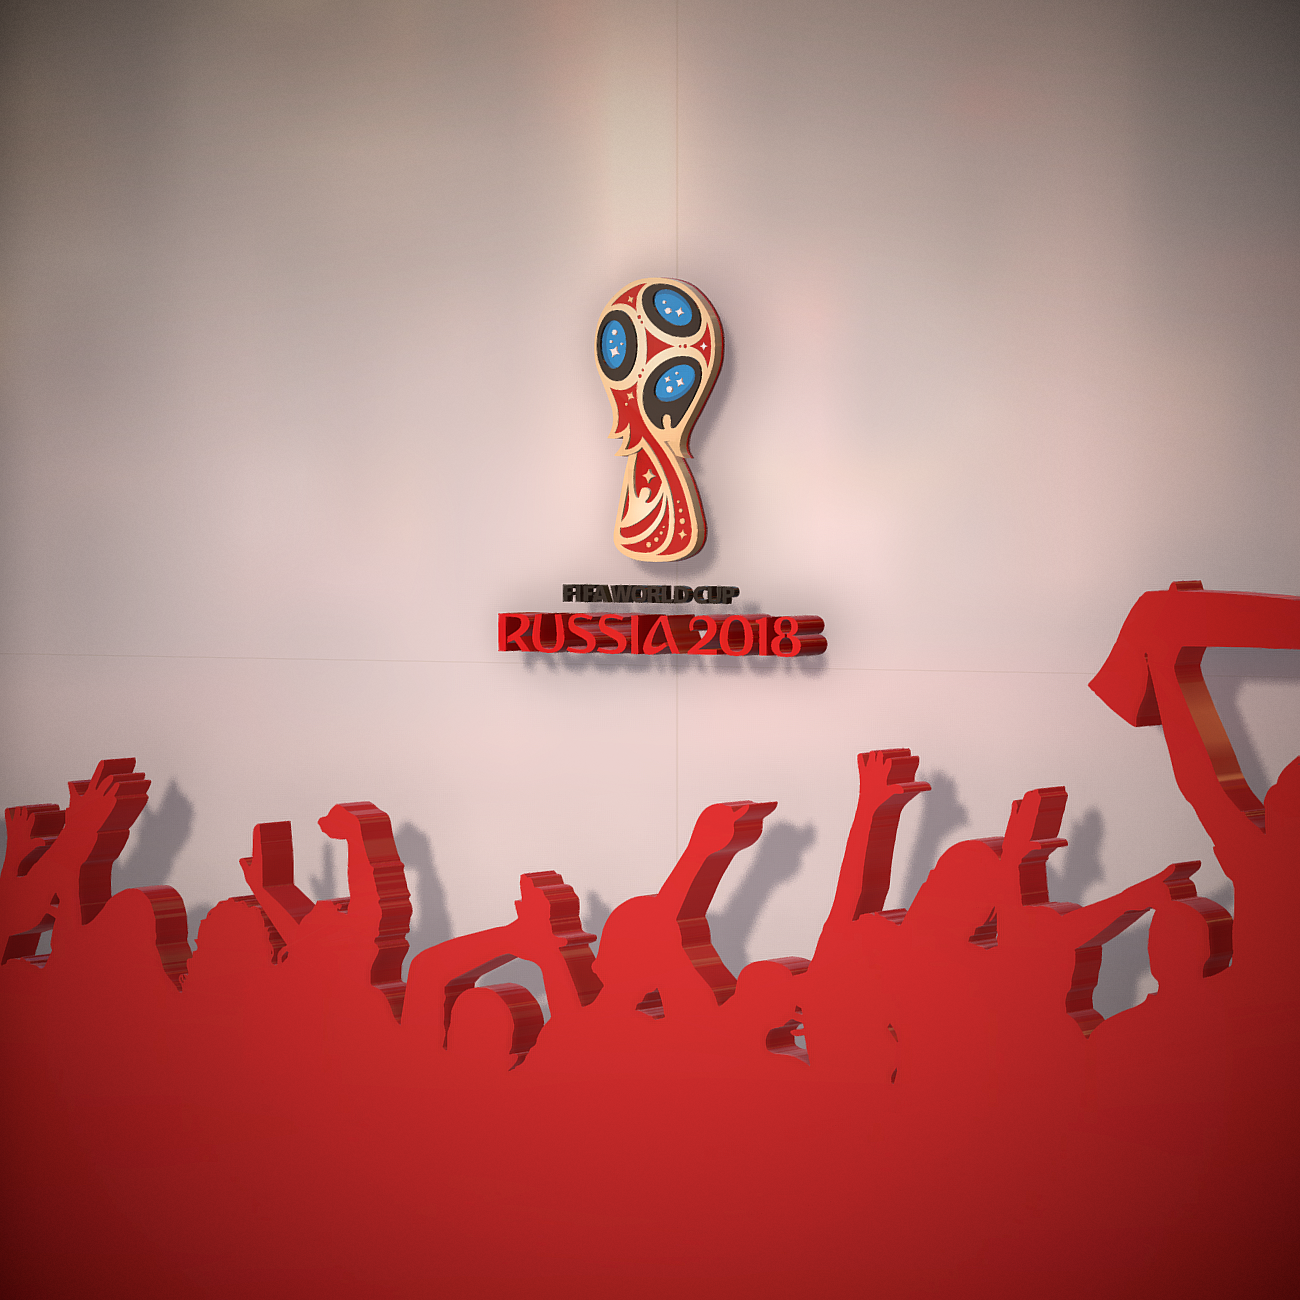 fifa world cup russia 2018 slyle 3d model 3ds max fbx ma mb obj 269745